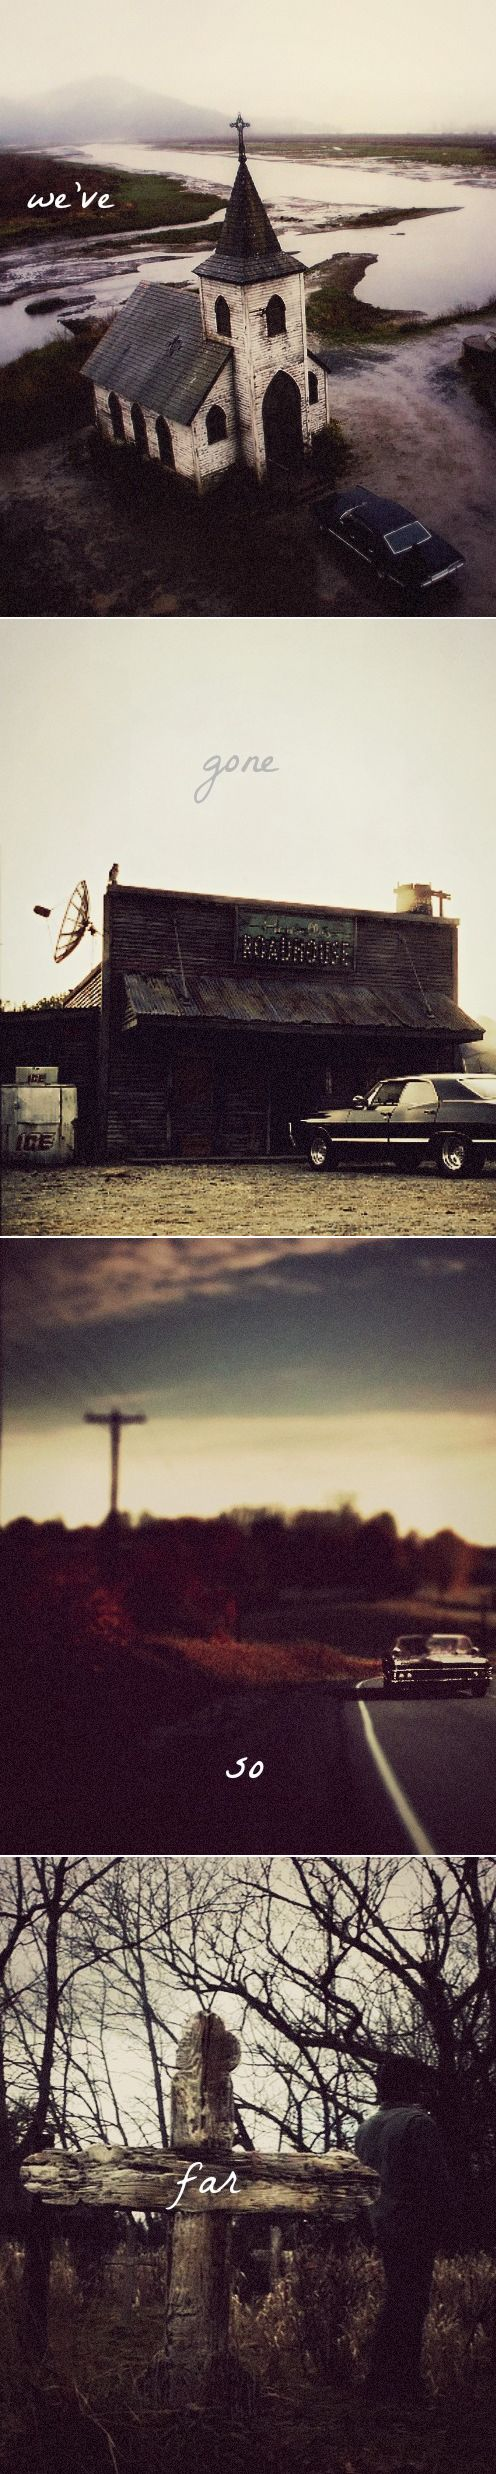 We've gone so far… #spn